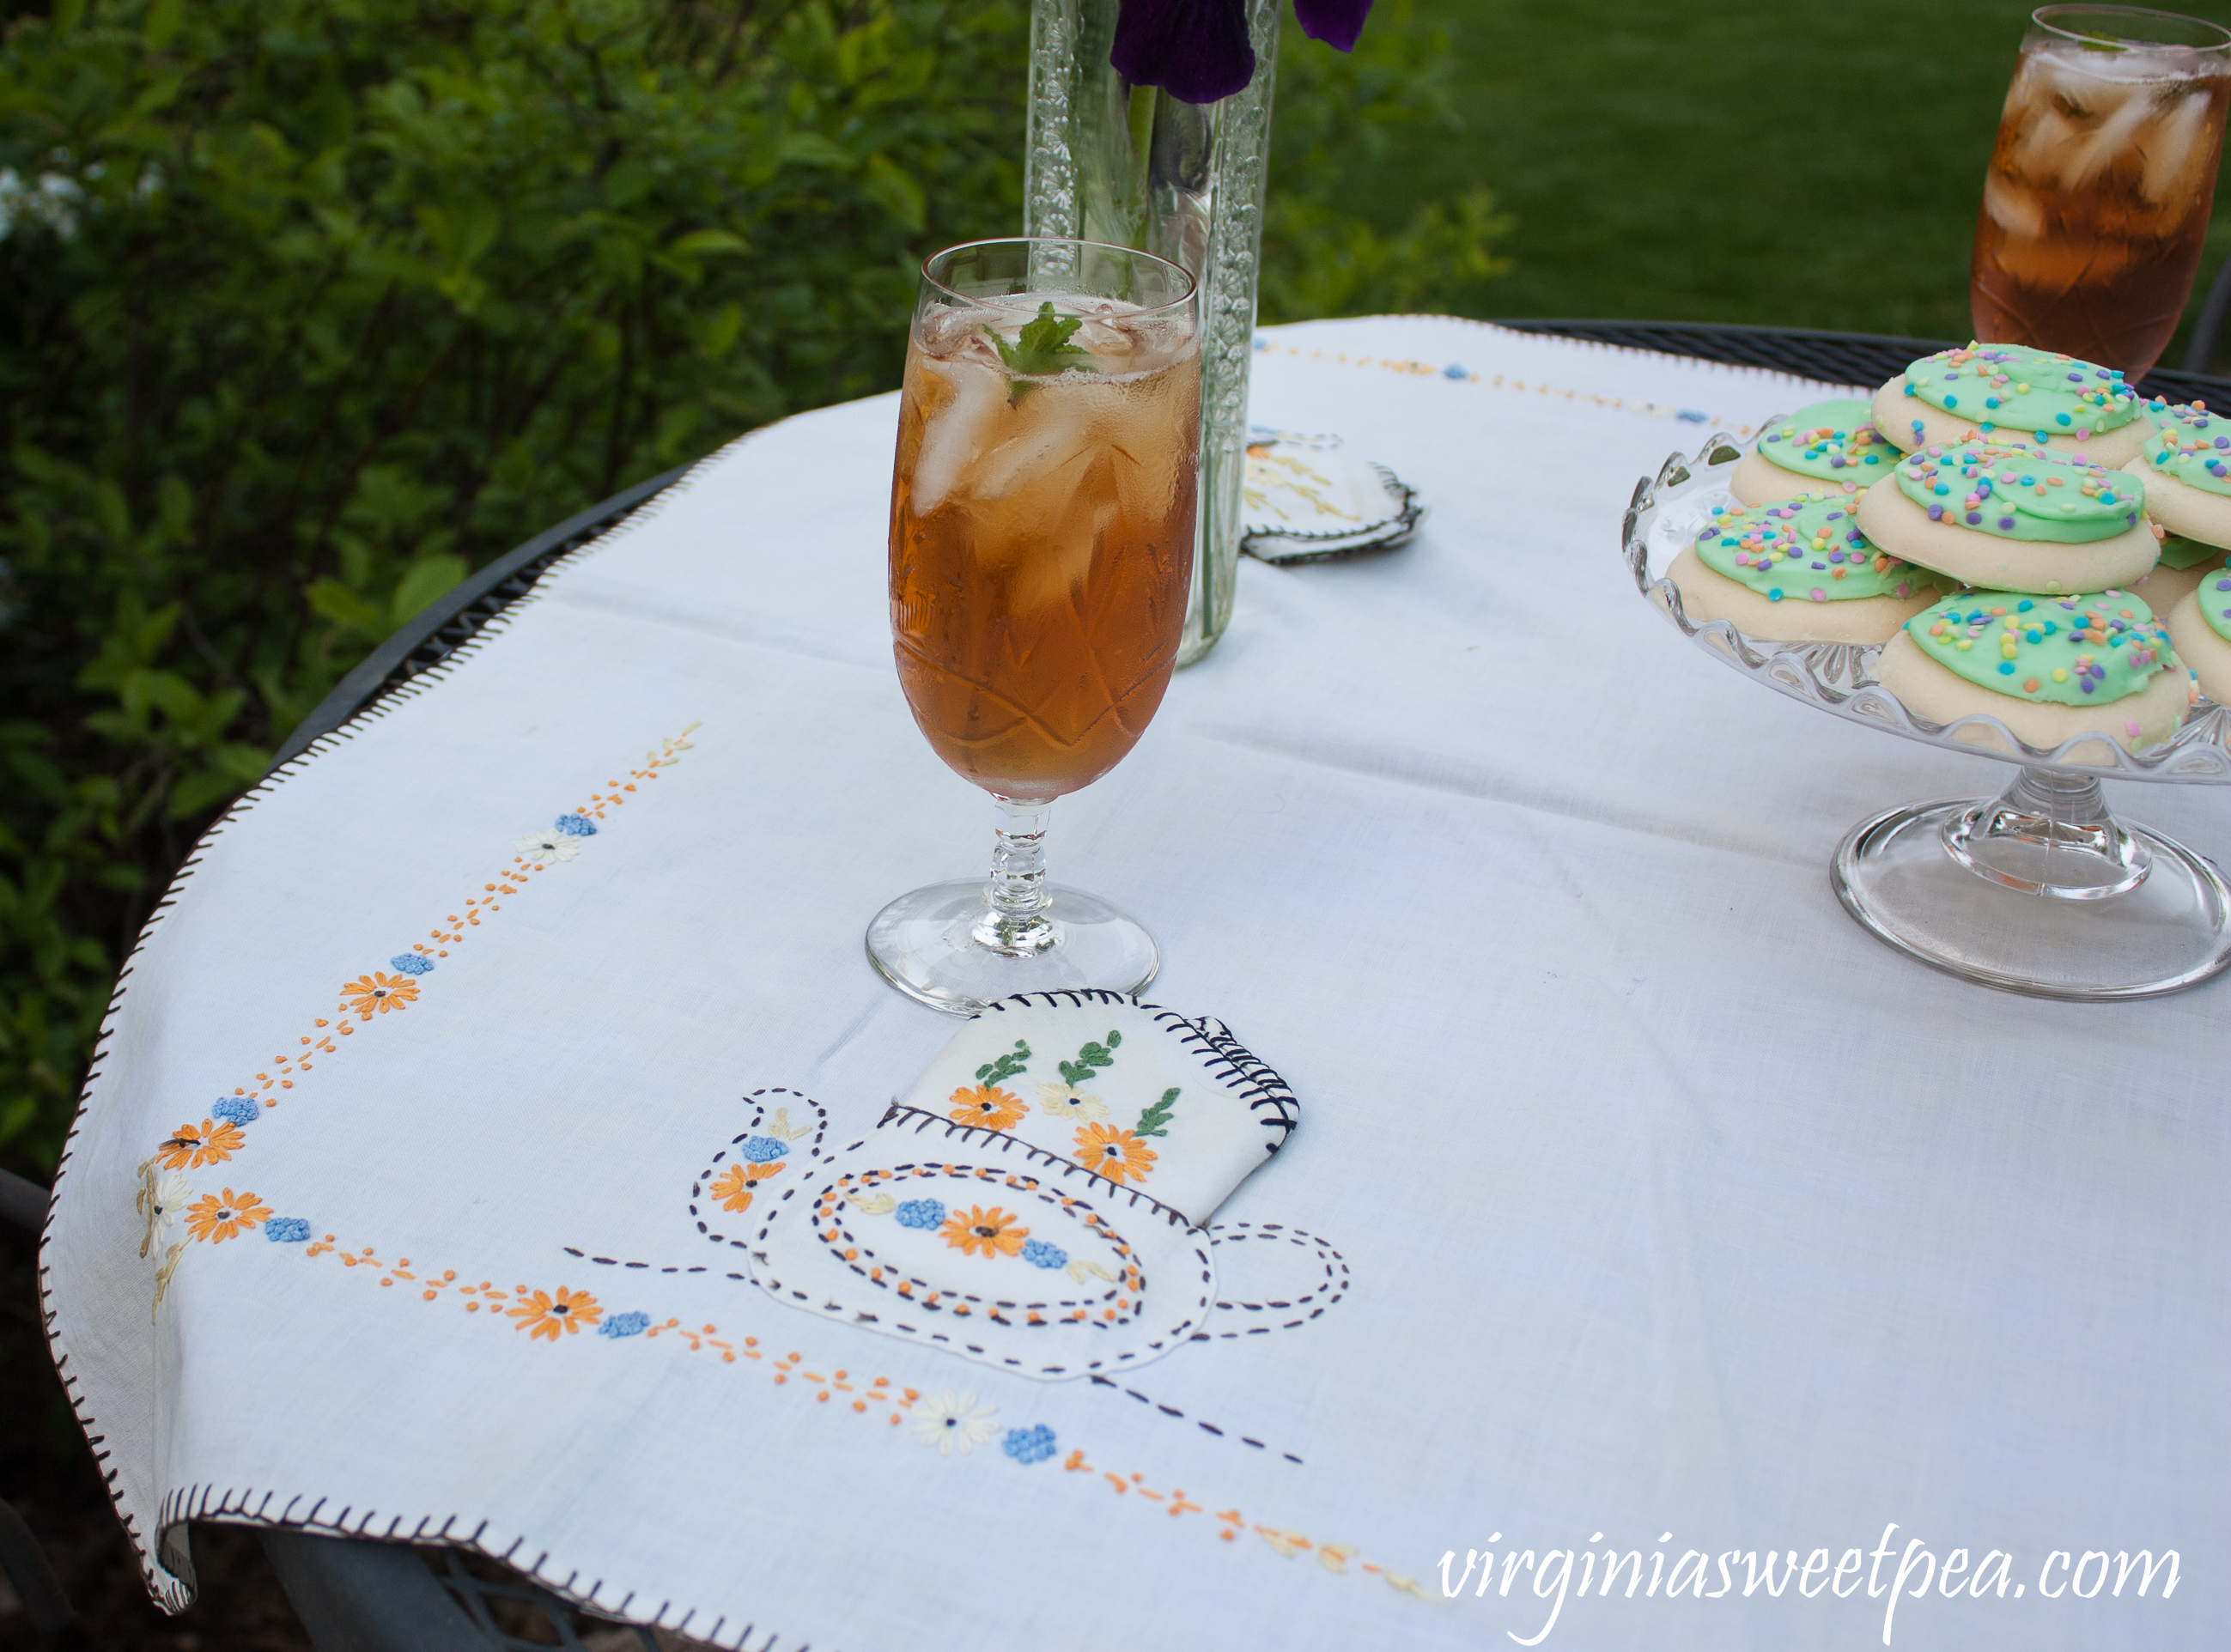 Villars by Rock Sharpe crystal with a 1930's tea party themed embroidered tablecloth